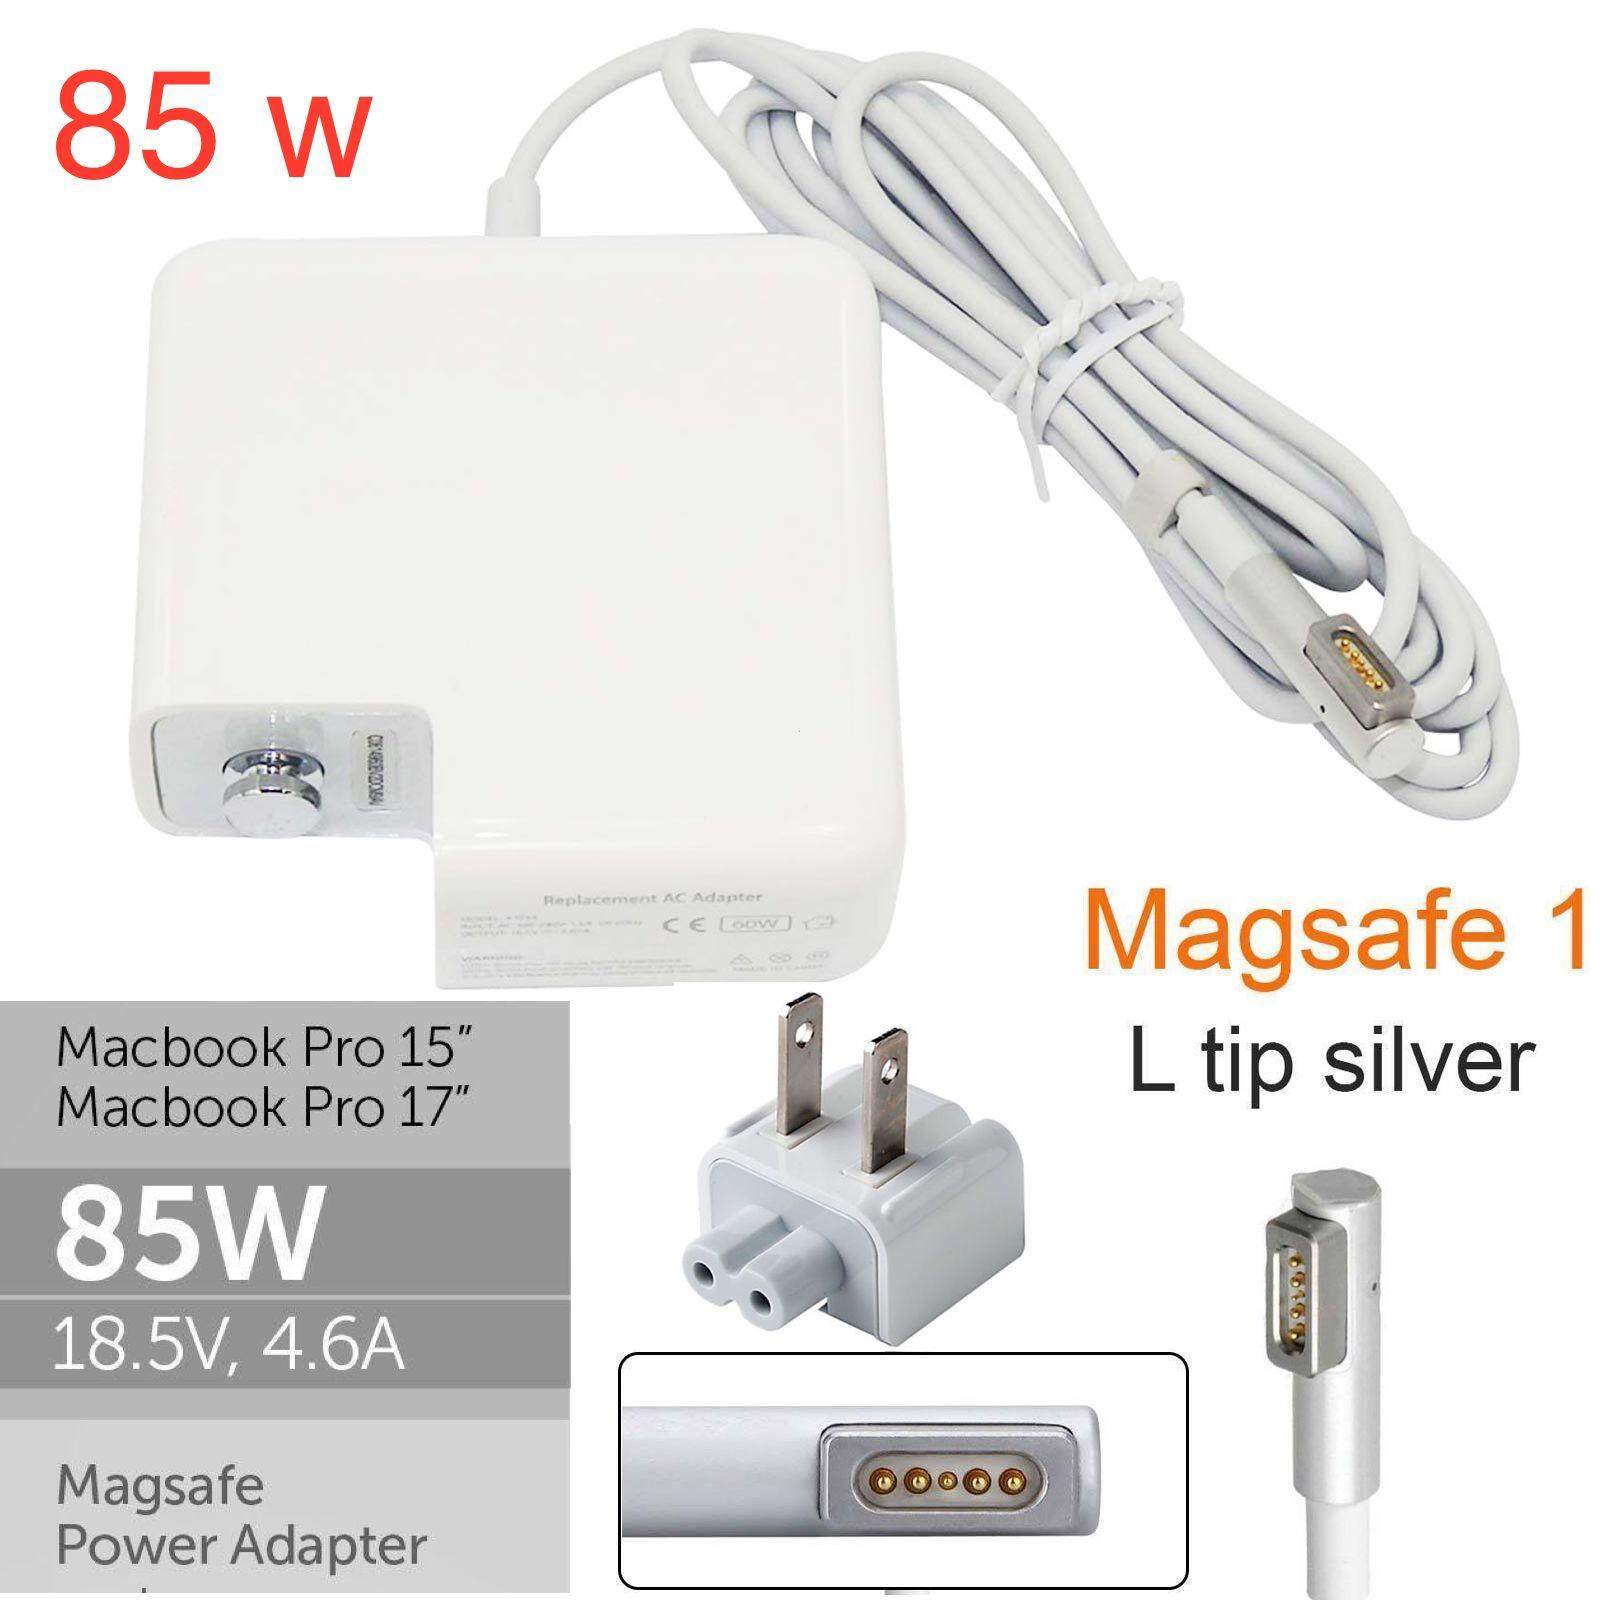 Sell 85w T Cheapest Best Quality Th Store Apple Macbook Pro A1211 154 Schematic Diagram Thb 520 Charger Power Adapter For Magsafe 1